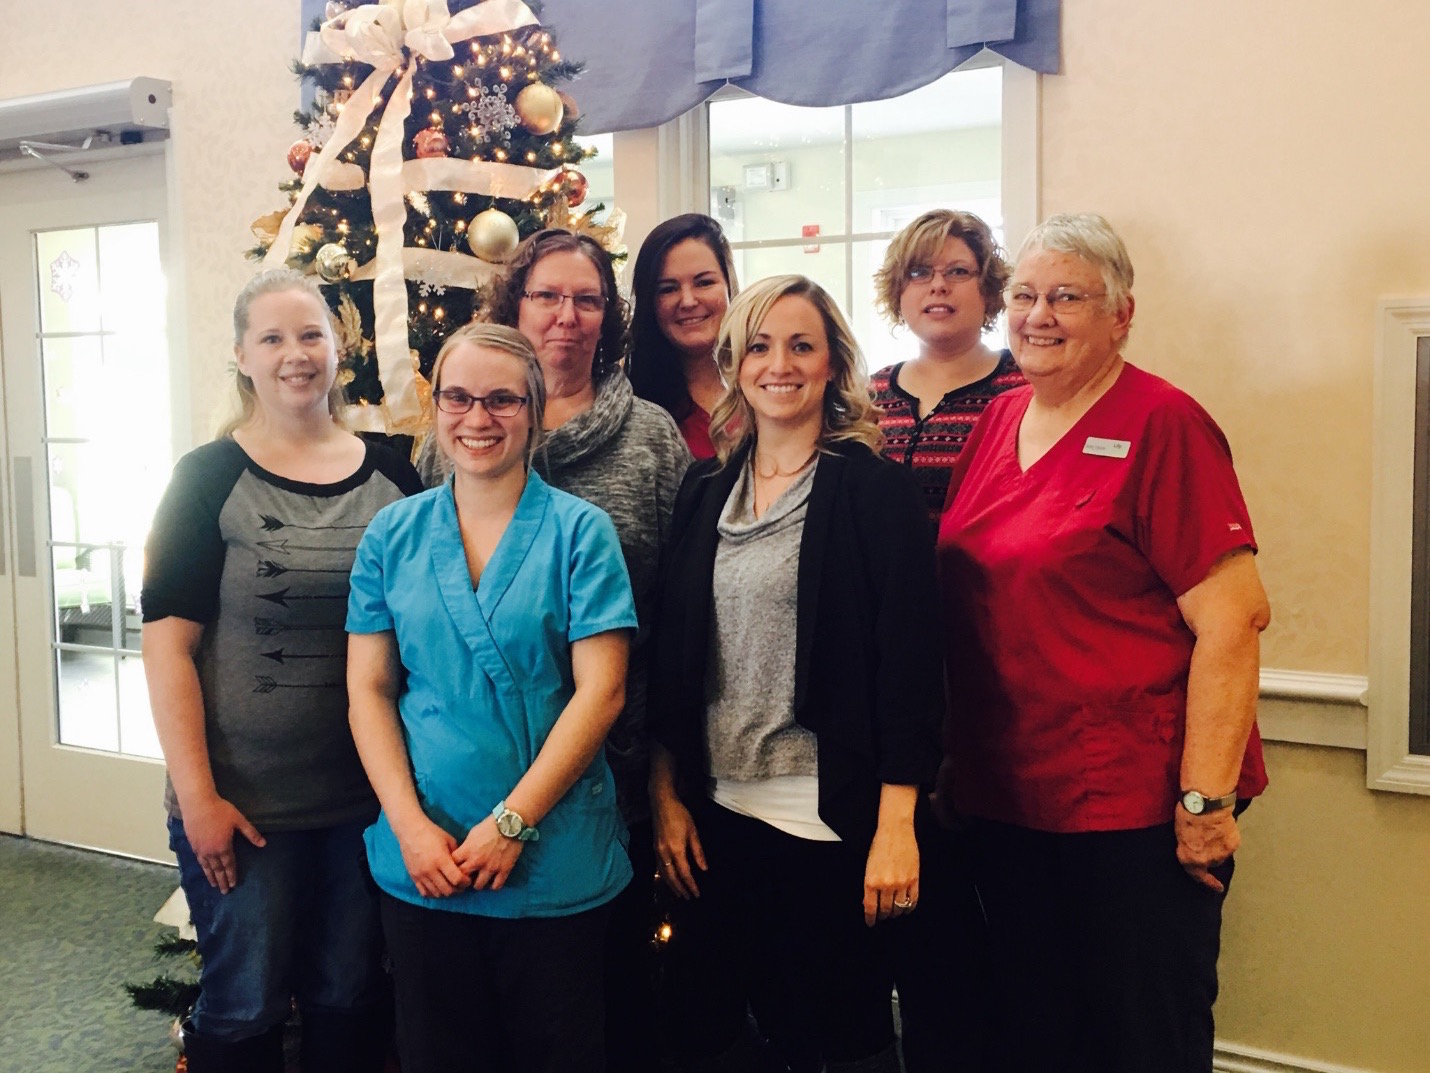 Picture left to right: Certified Medication Aide, Megin Lang; Certified Medication Aide, Alissa Koski; Director of Nursing, Leann Hintz, Certified Medication Aide, Haley Tschetter, Administrator, Lindsey Sainsbury, Certified Medication Aide, Deanna Mickelson; and Cook, Lil Odell.